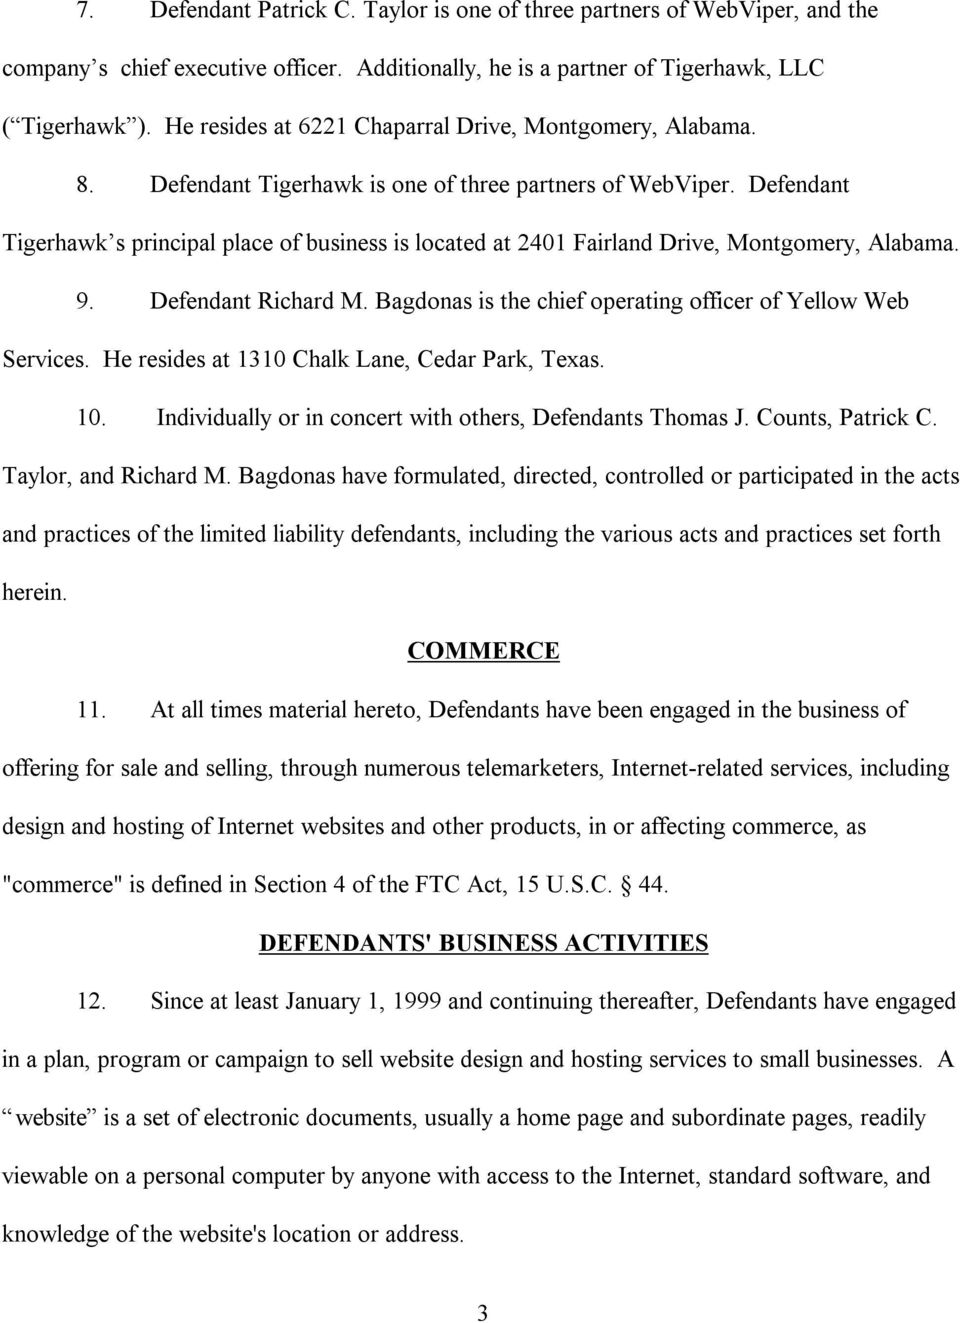 Defendant Tigerhawk s principal place of business is located at 2401 Fairland Drive, Montgomery, Alabama. 9. Defendant Richard M. Bagdonas is the chief operating officer of Yellow Web Services.